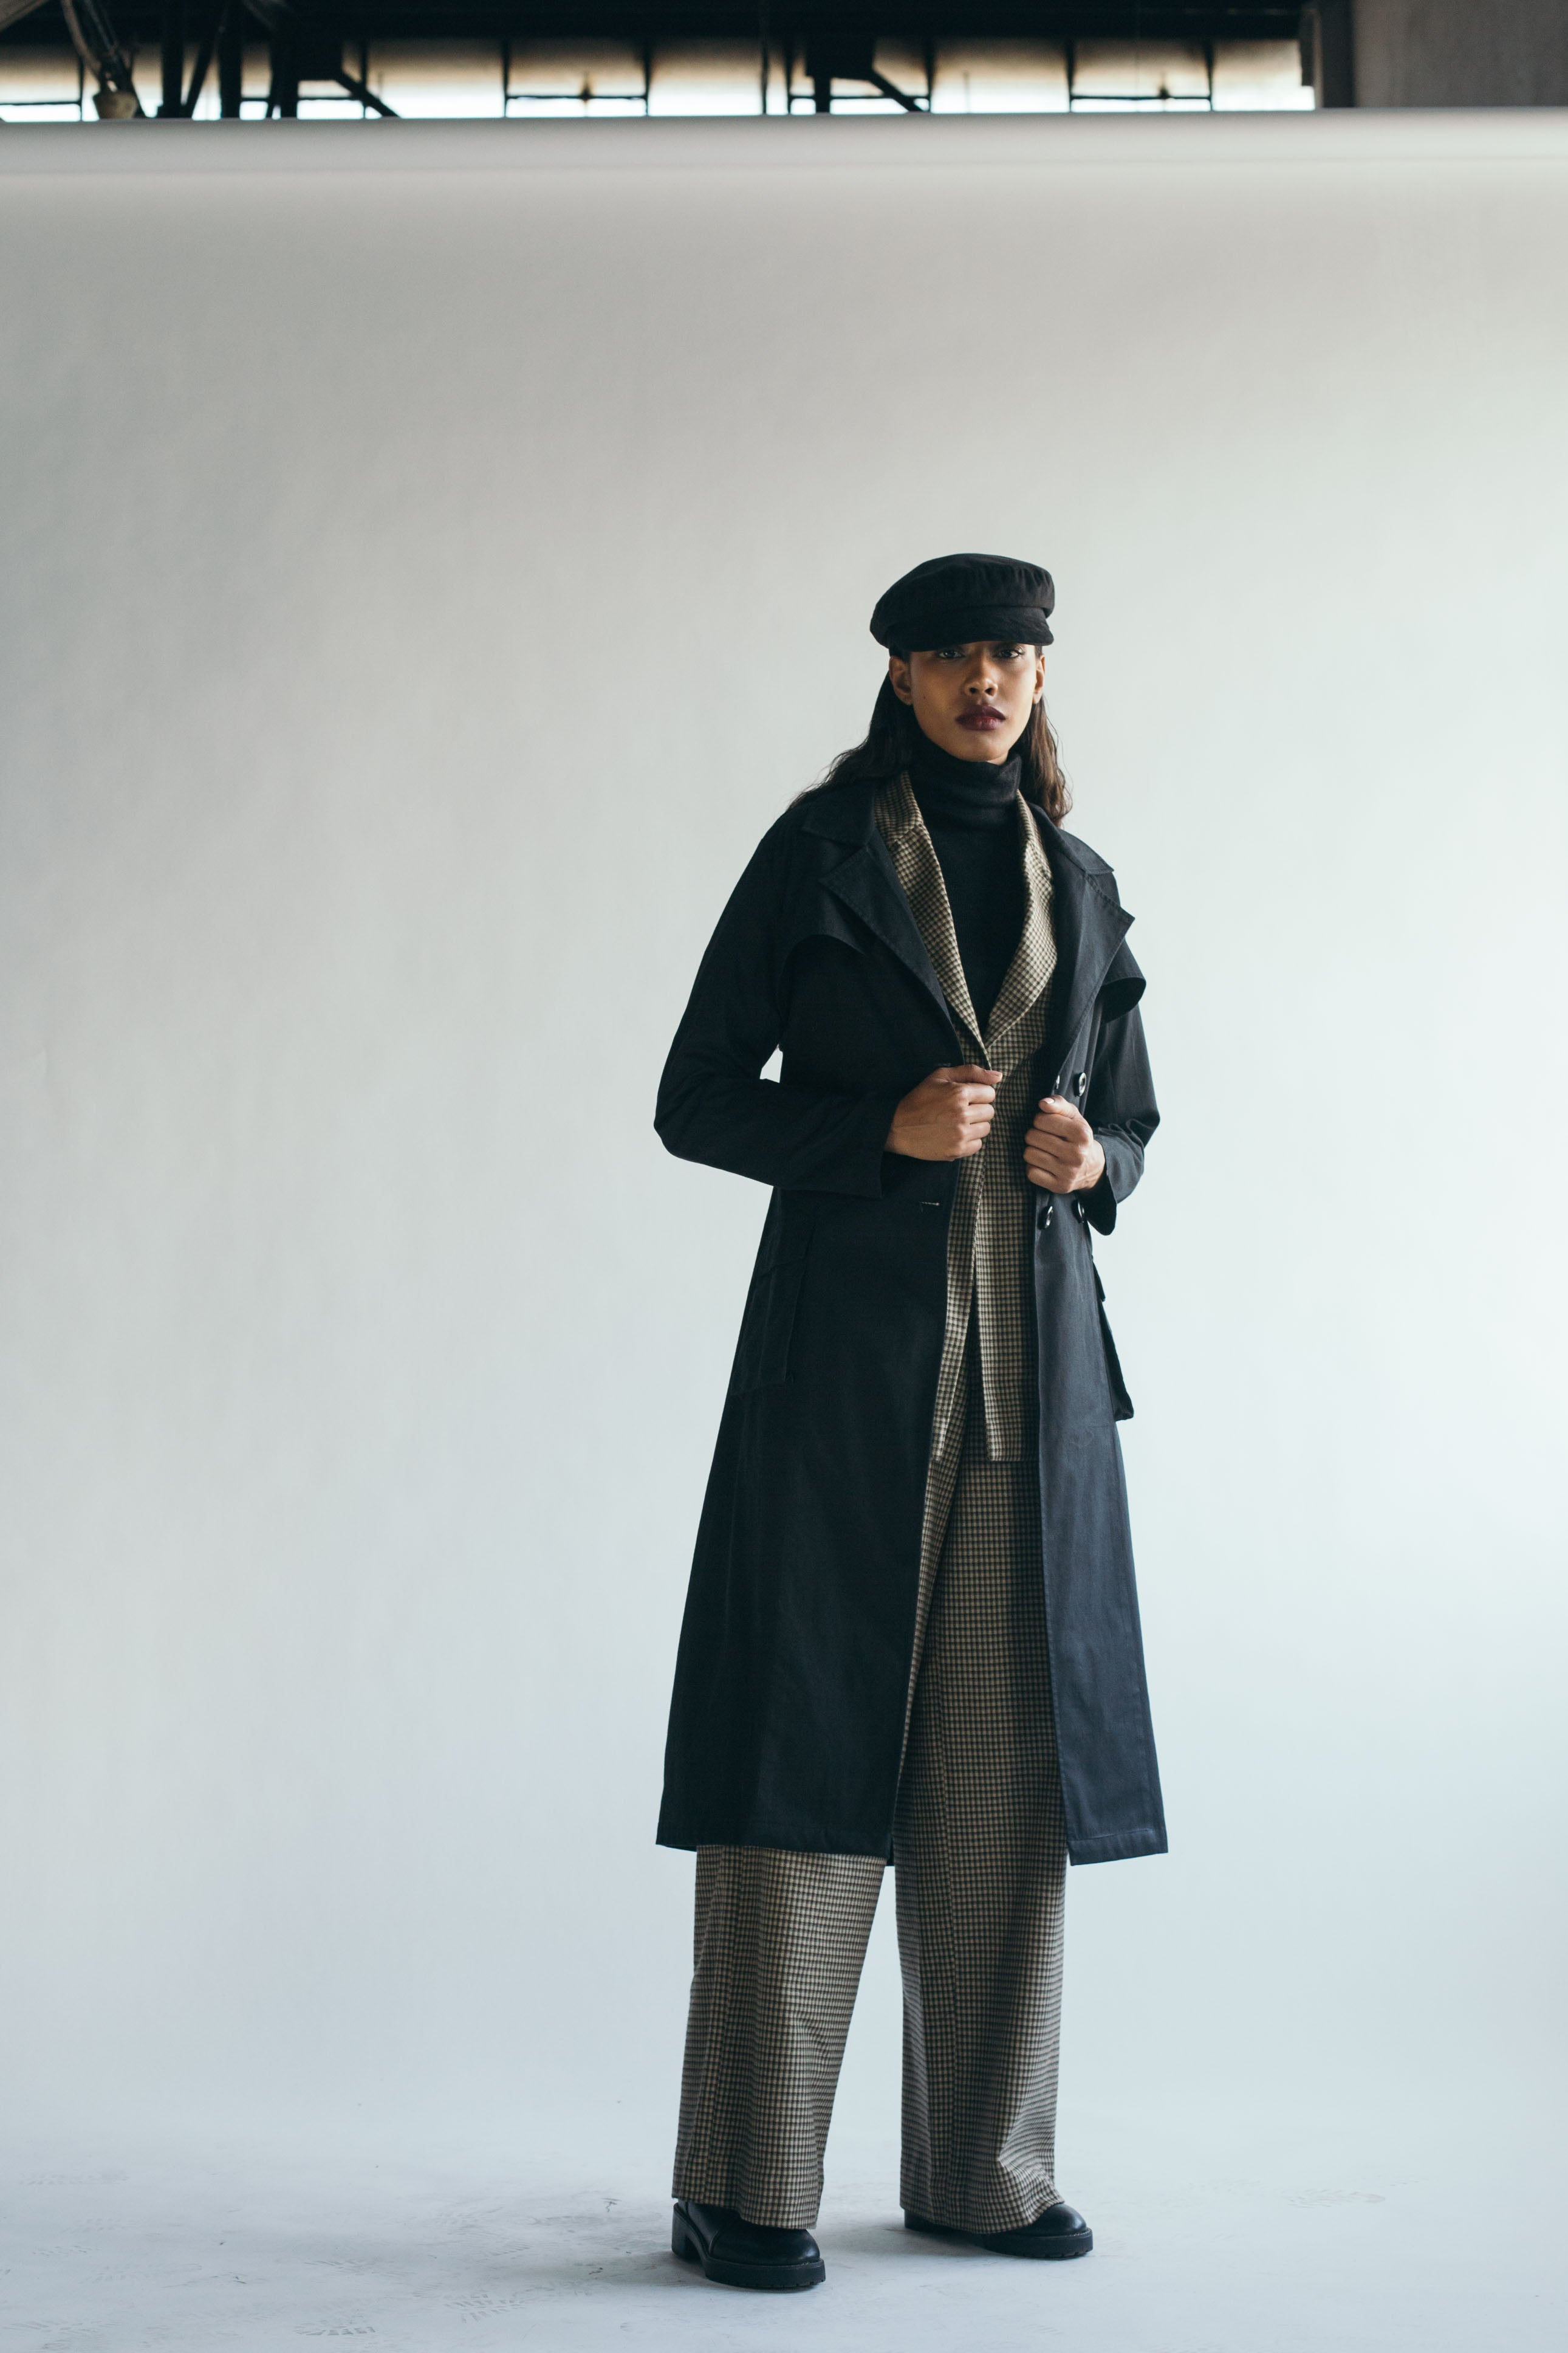 The Charcoal Trench